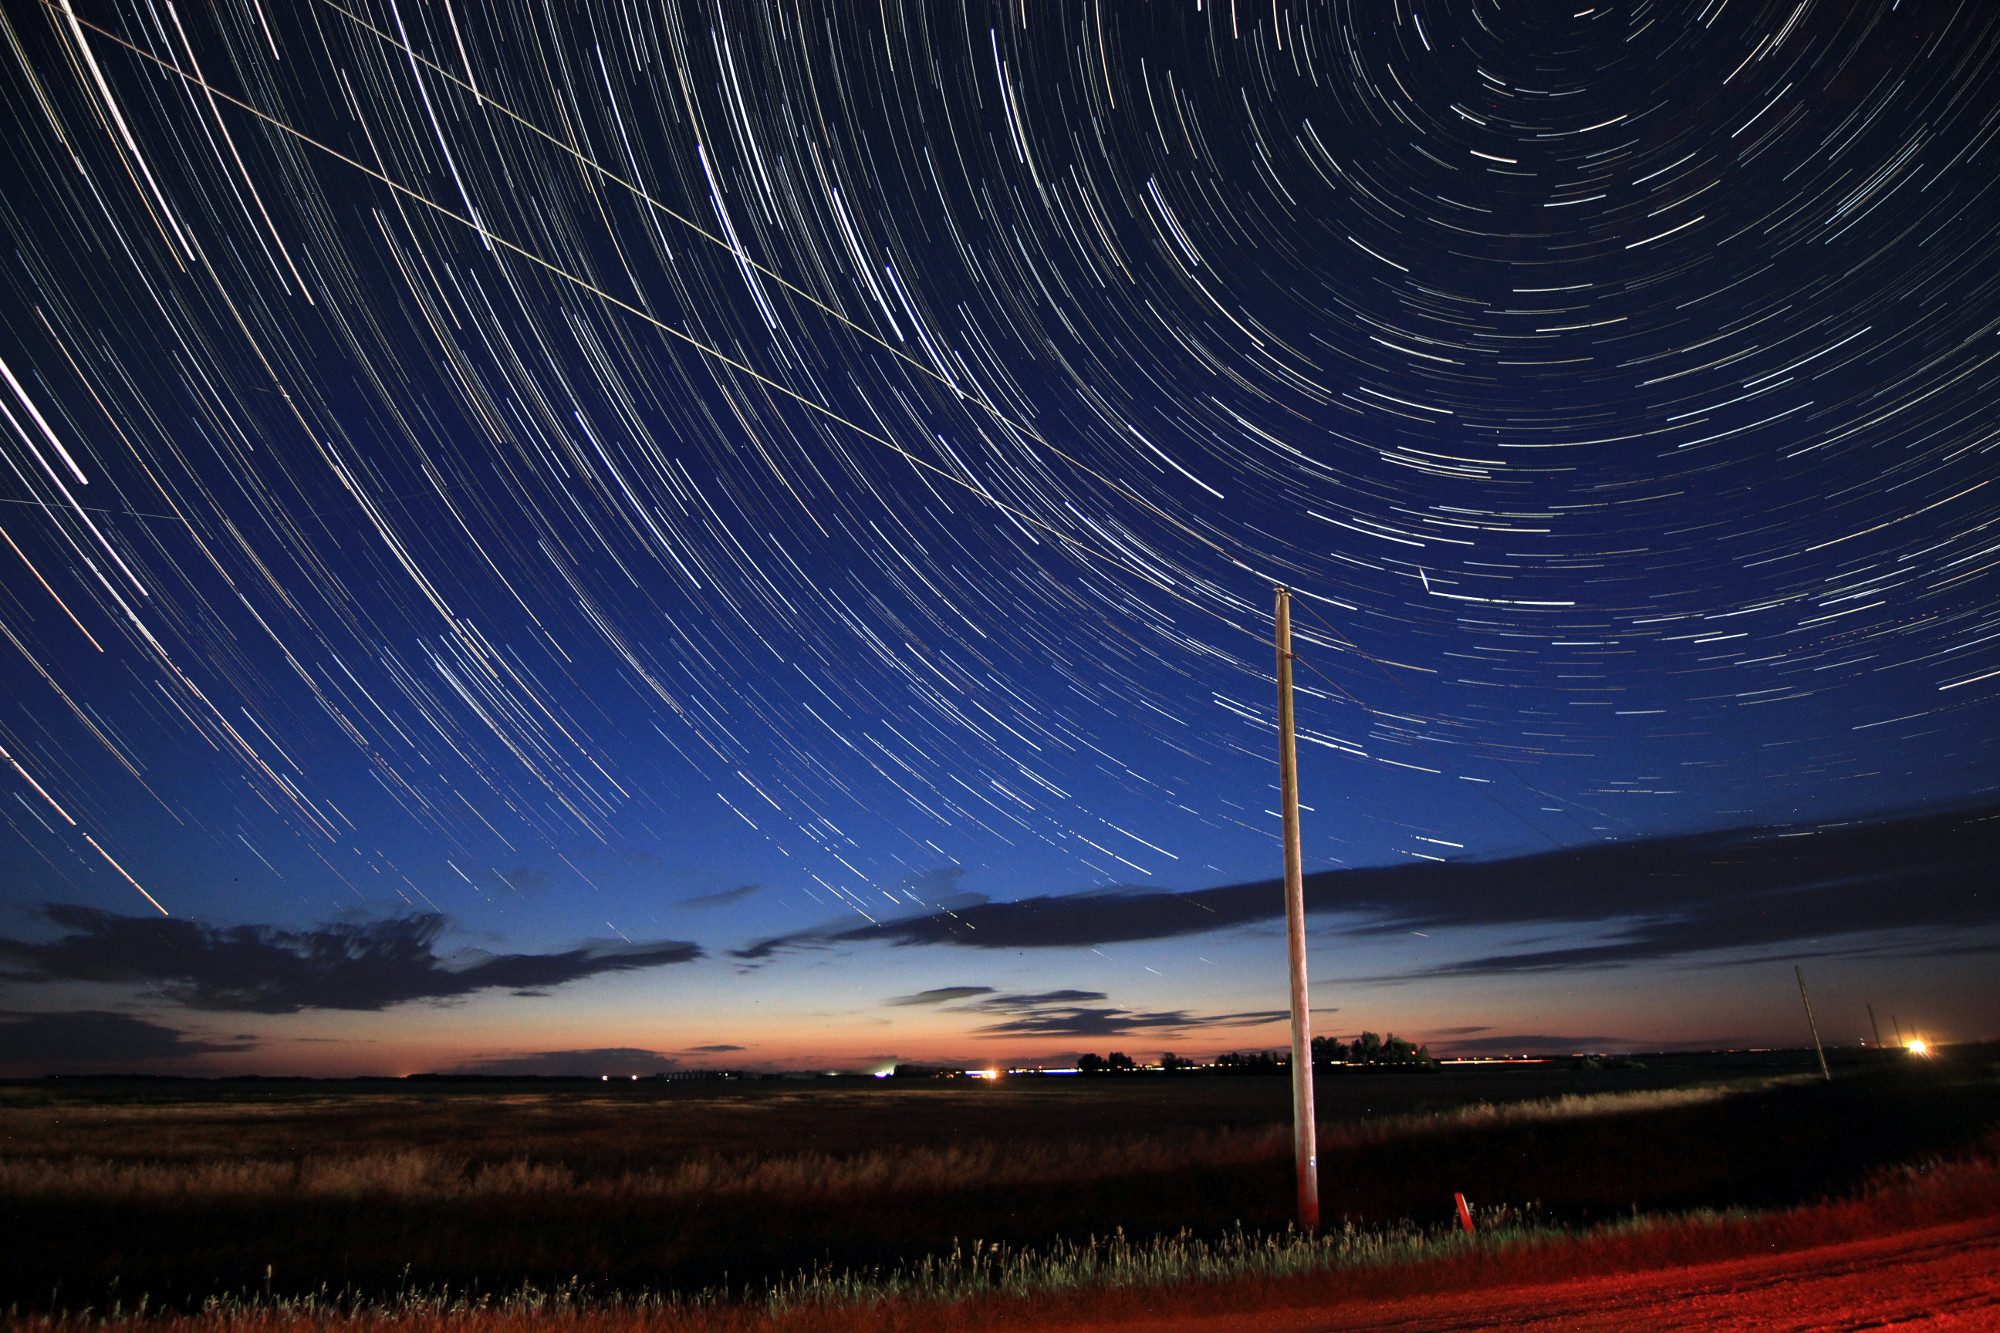 Star trails, Aug. 11, 2020